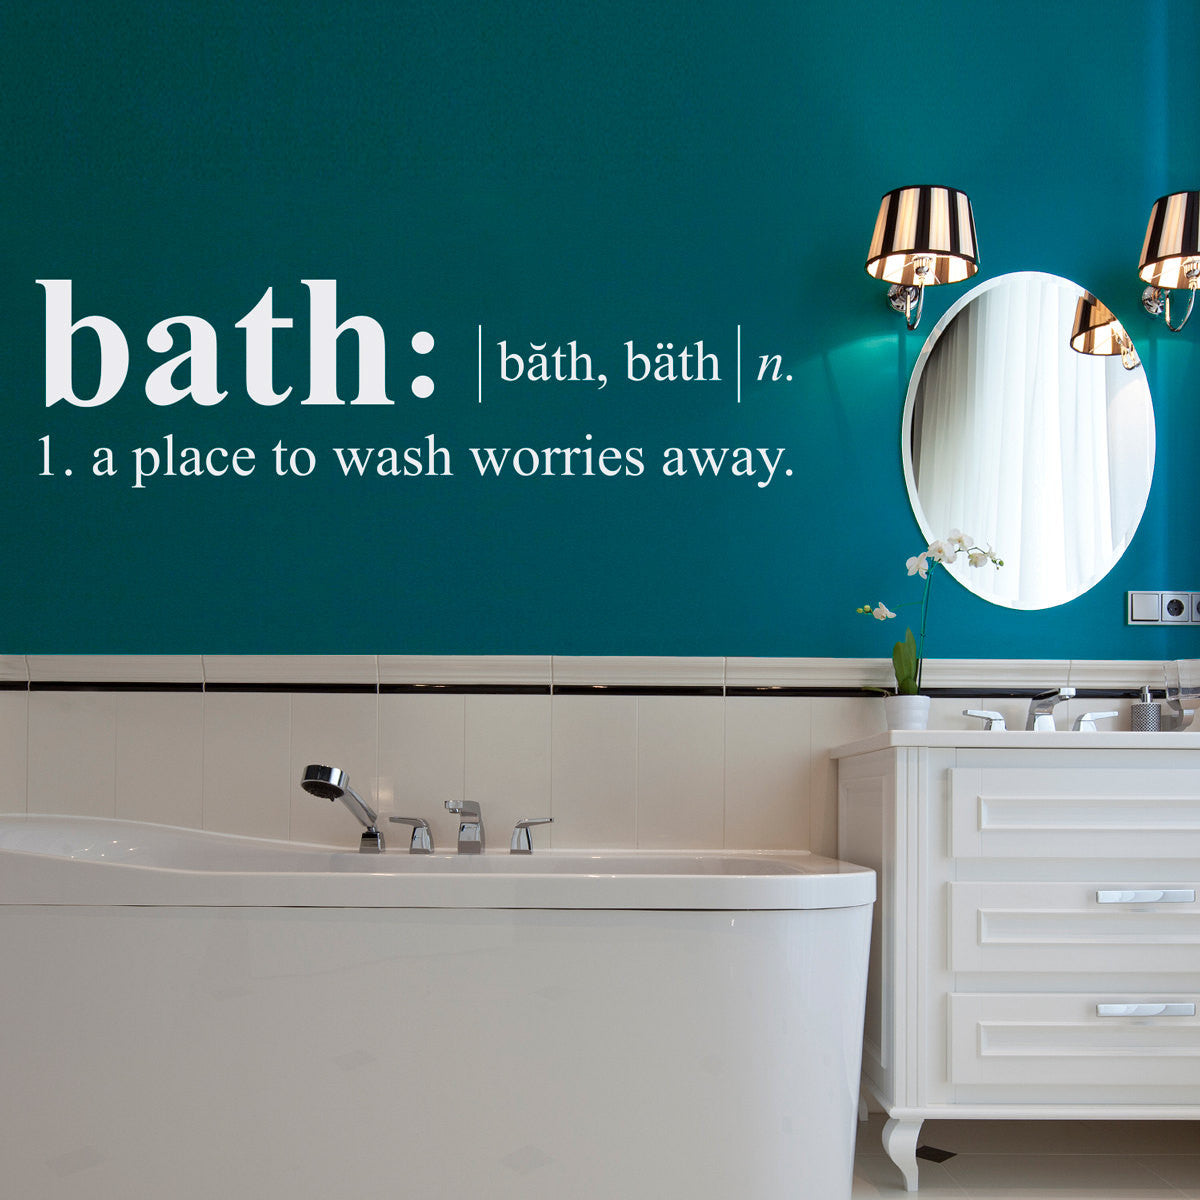 Bath Definition Wall Decal Dictionary Definition Decal - Wall decals bathroom